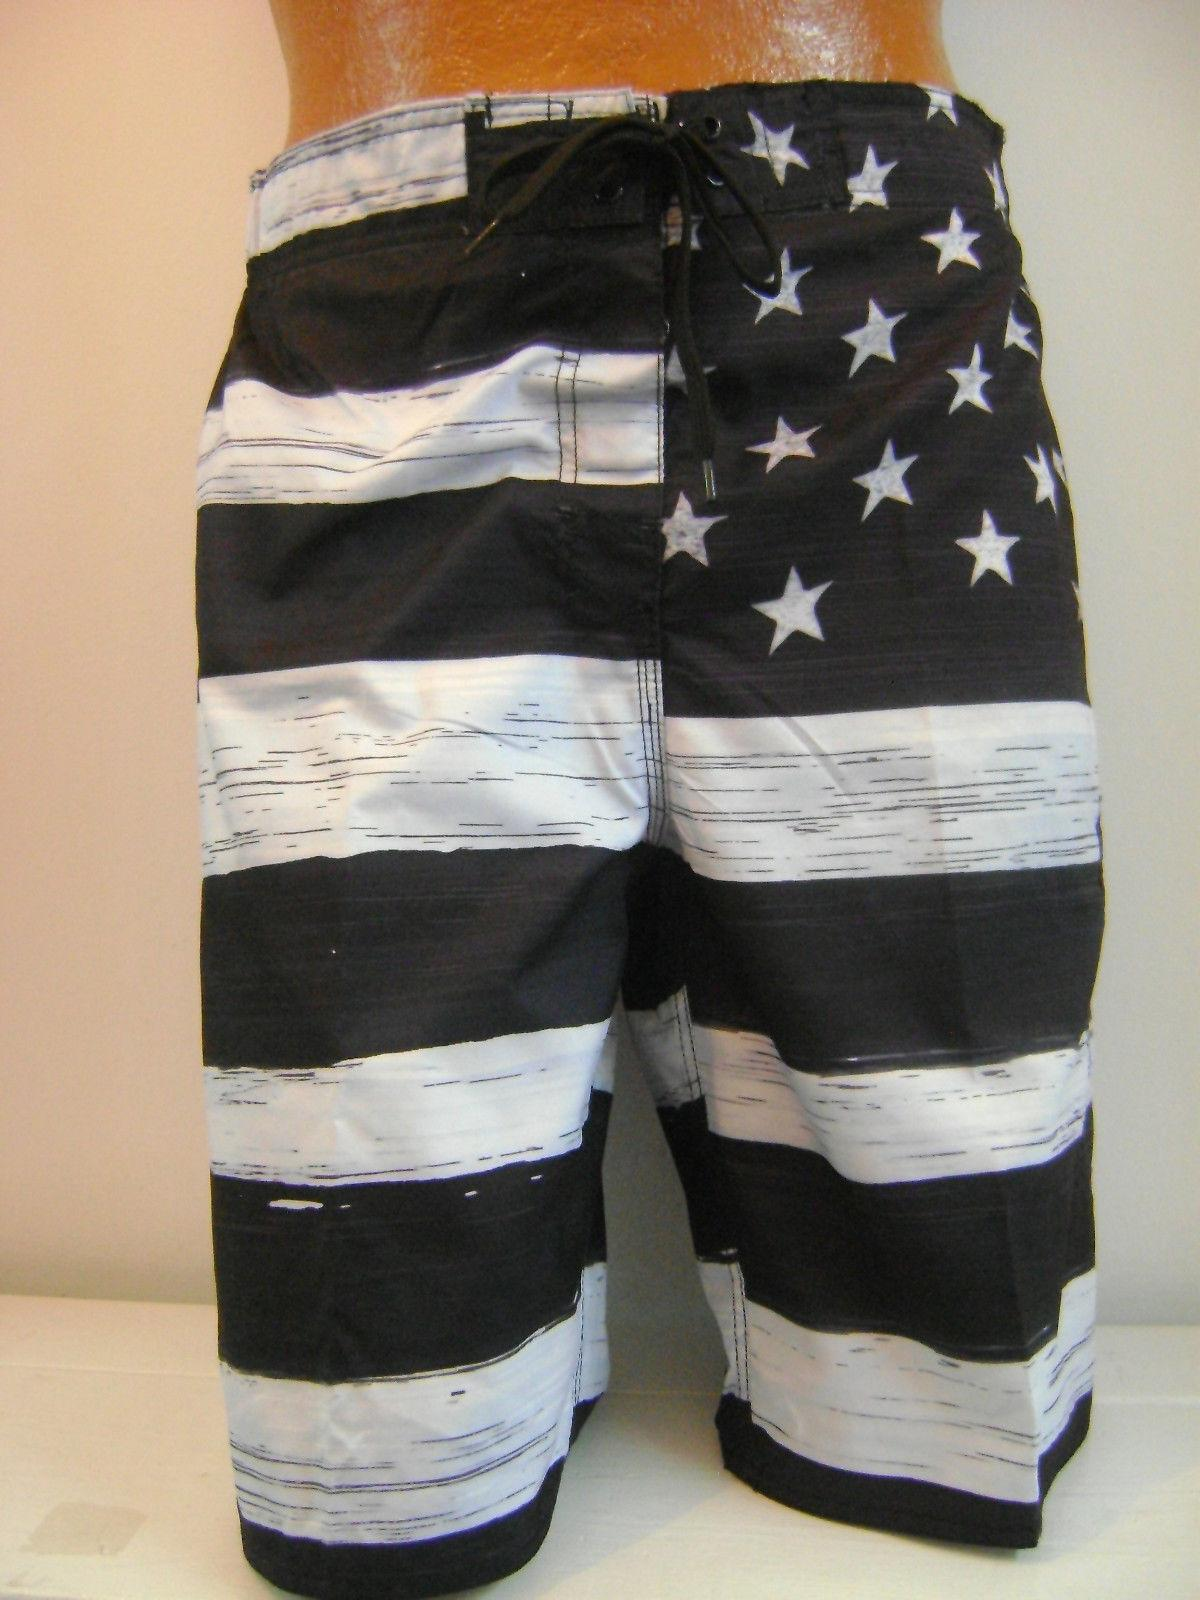 5617e9ccd1 By Beautiful Giant. USD $14.99. MEN'S American FLAG SWIM TRUNK BOARD SHORTS  Black & White O